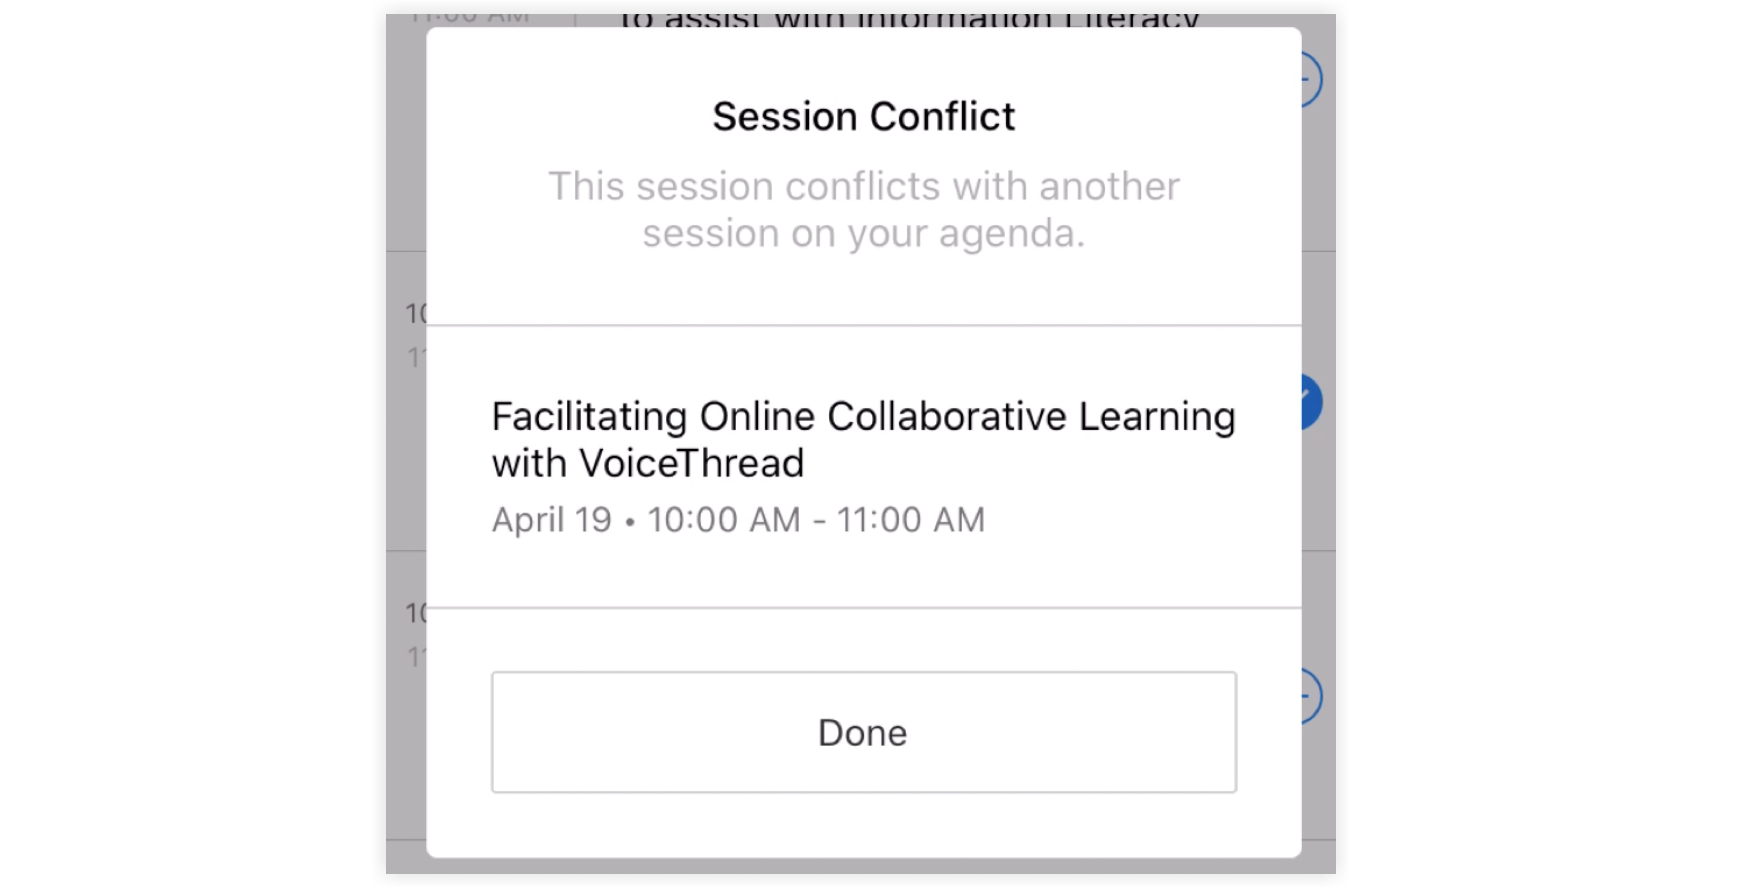 Screenshot of the Session Conflict warning,